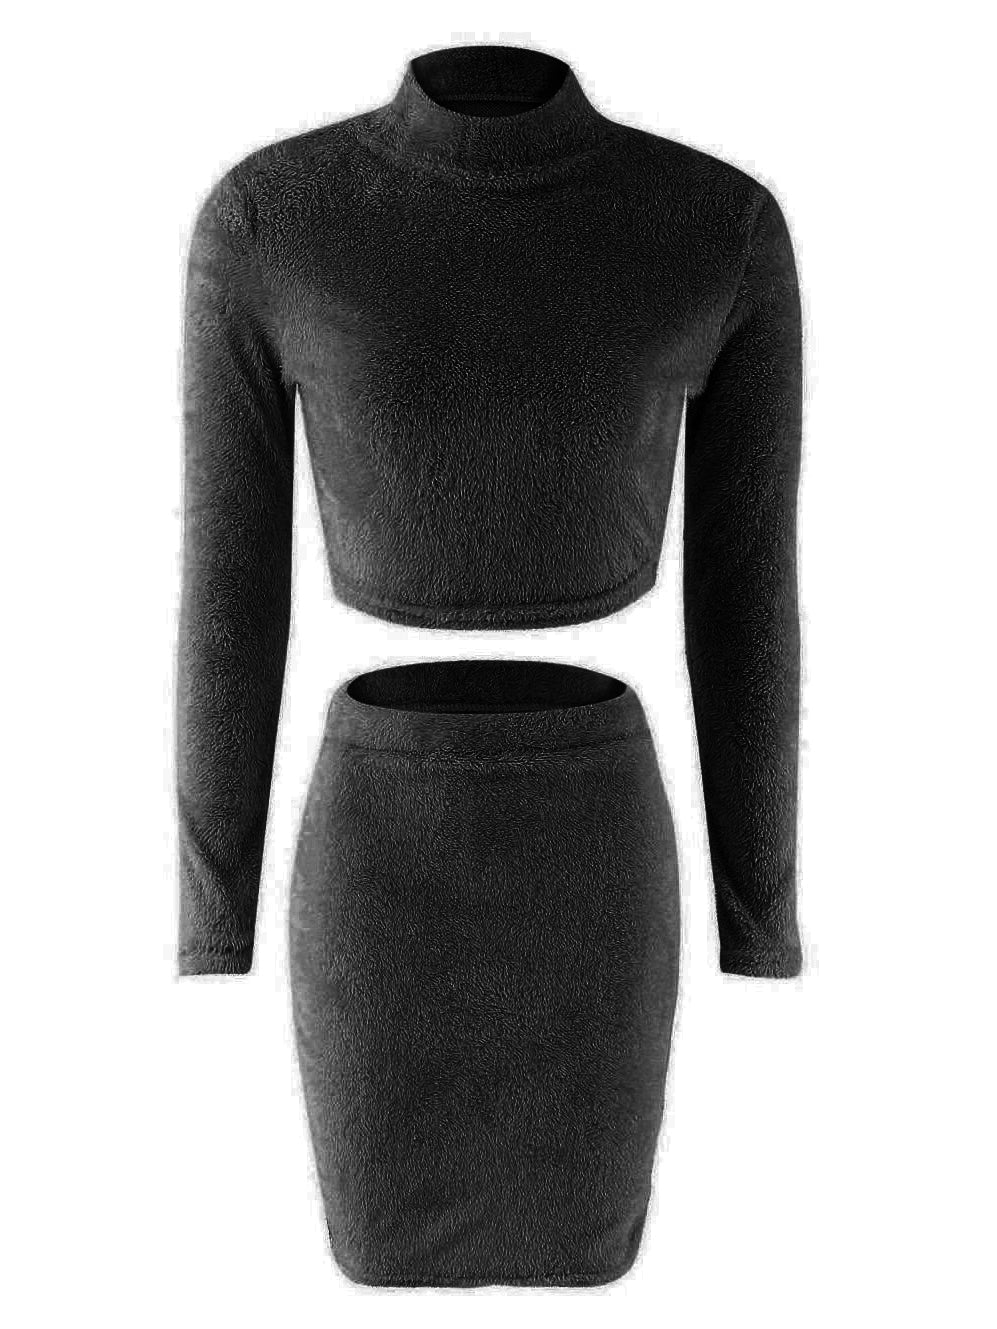 black two piece turtleneck crop top, skirt set